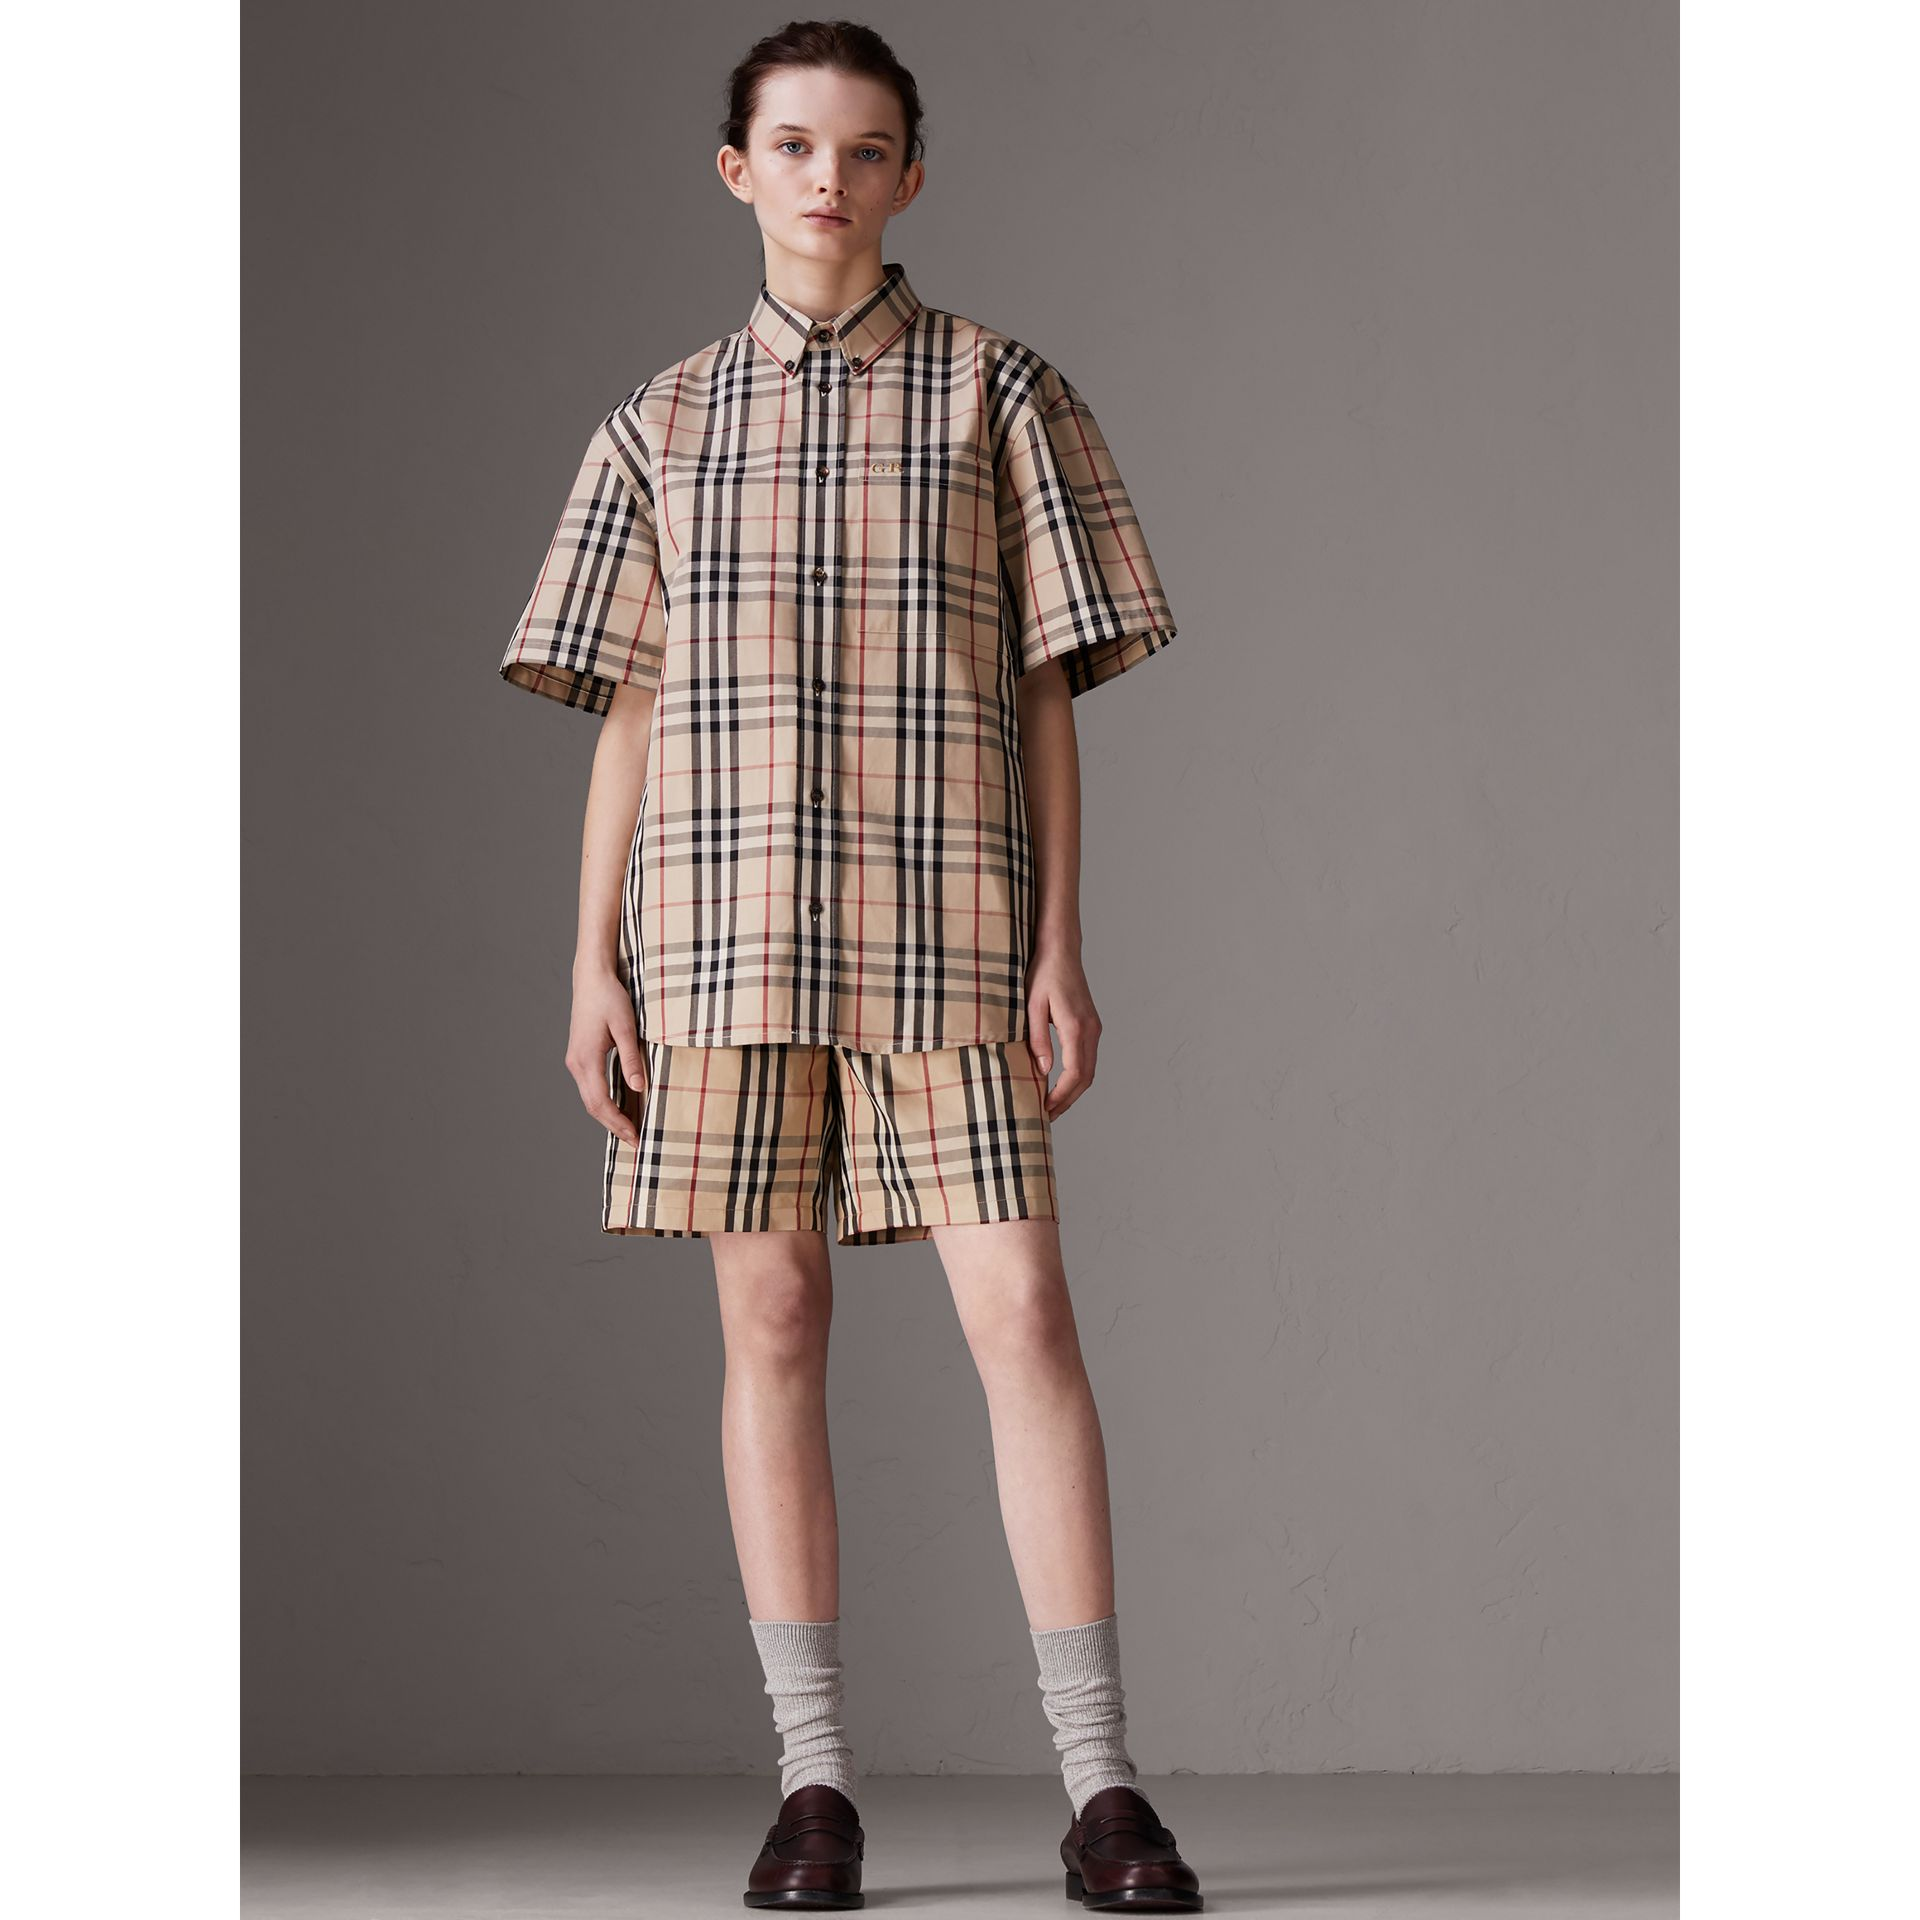 Gosha x Burberry Short-sleeve Check Shirt in Honey - Men | Burberry United States - gallery image 3